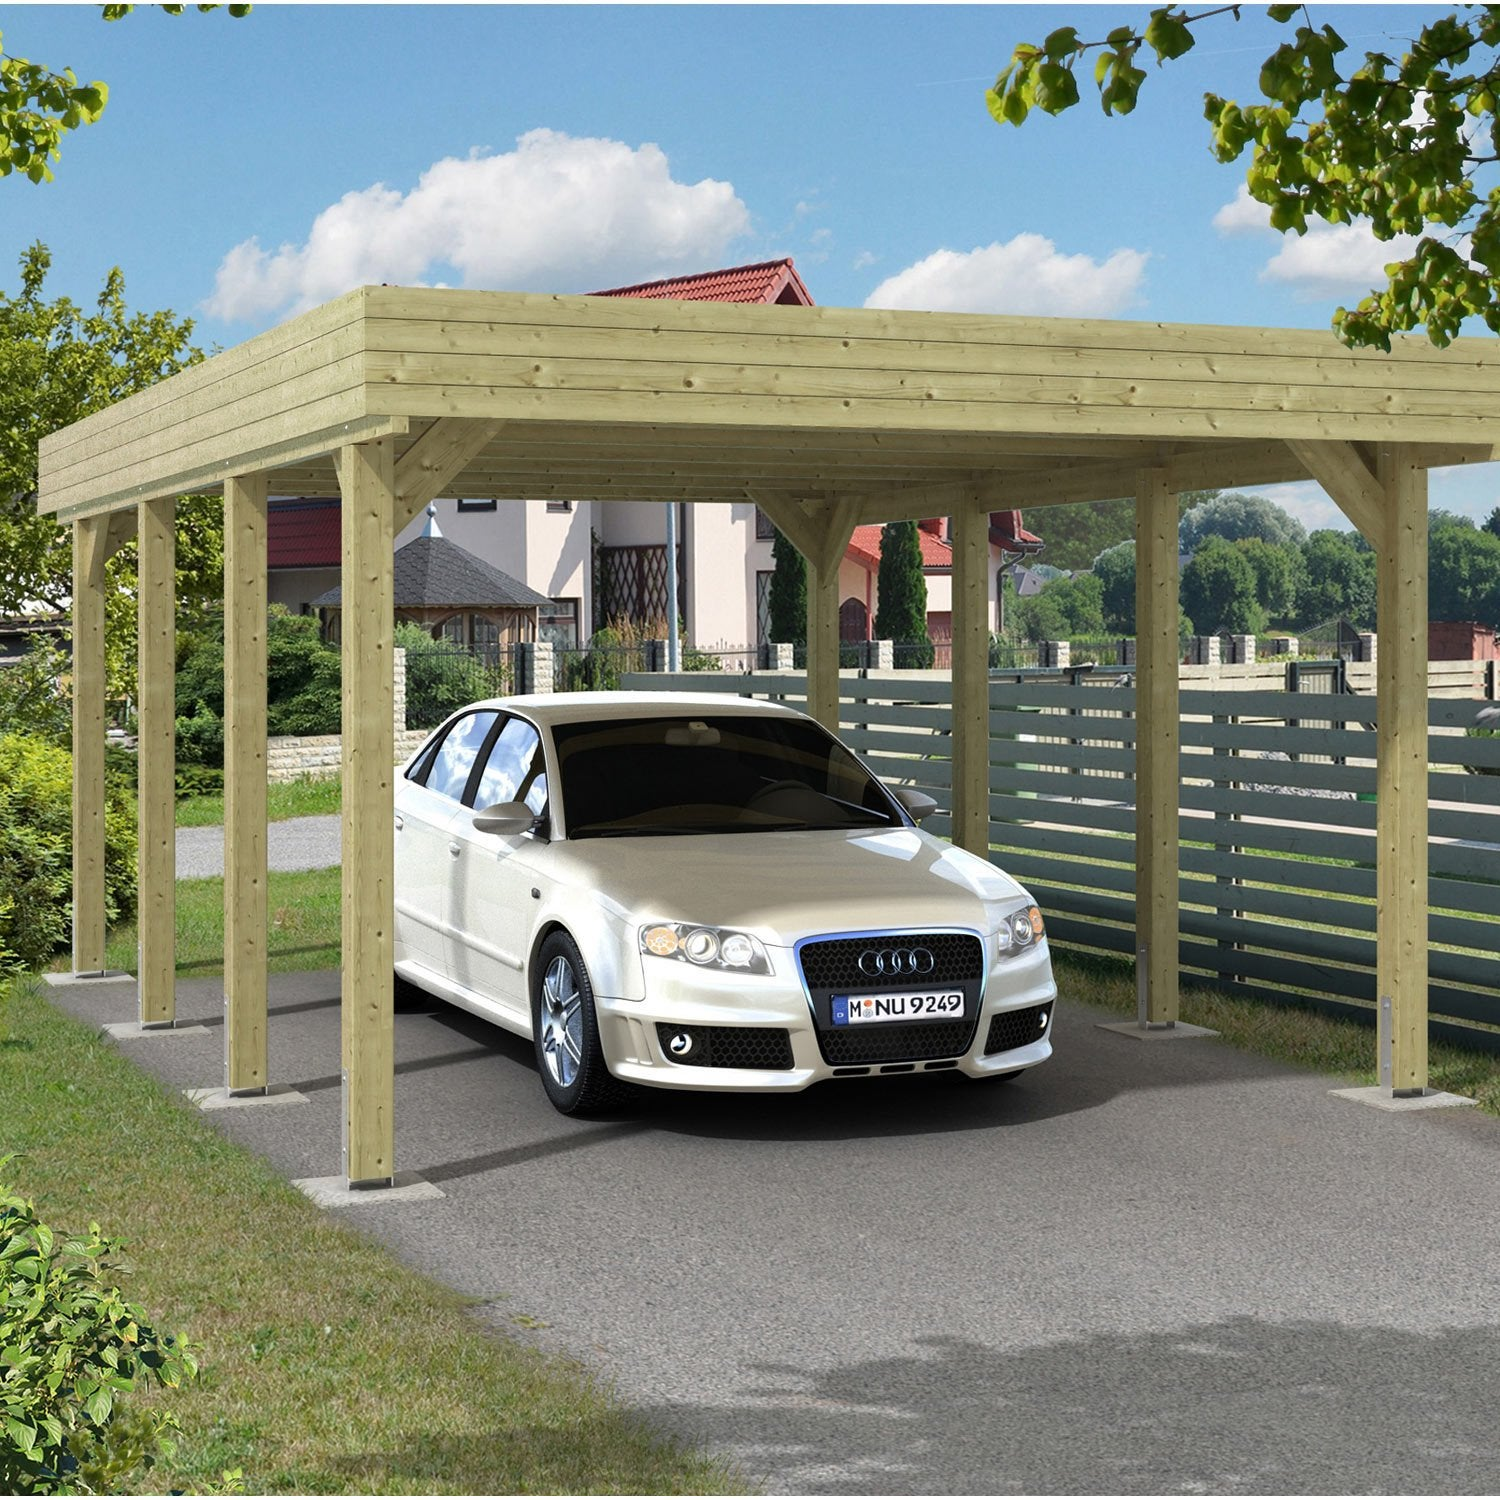 Carport bois jaarma 1 voiture 18 5 m leroy merlin for Carport 1